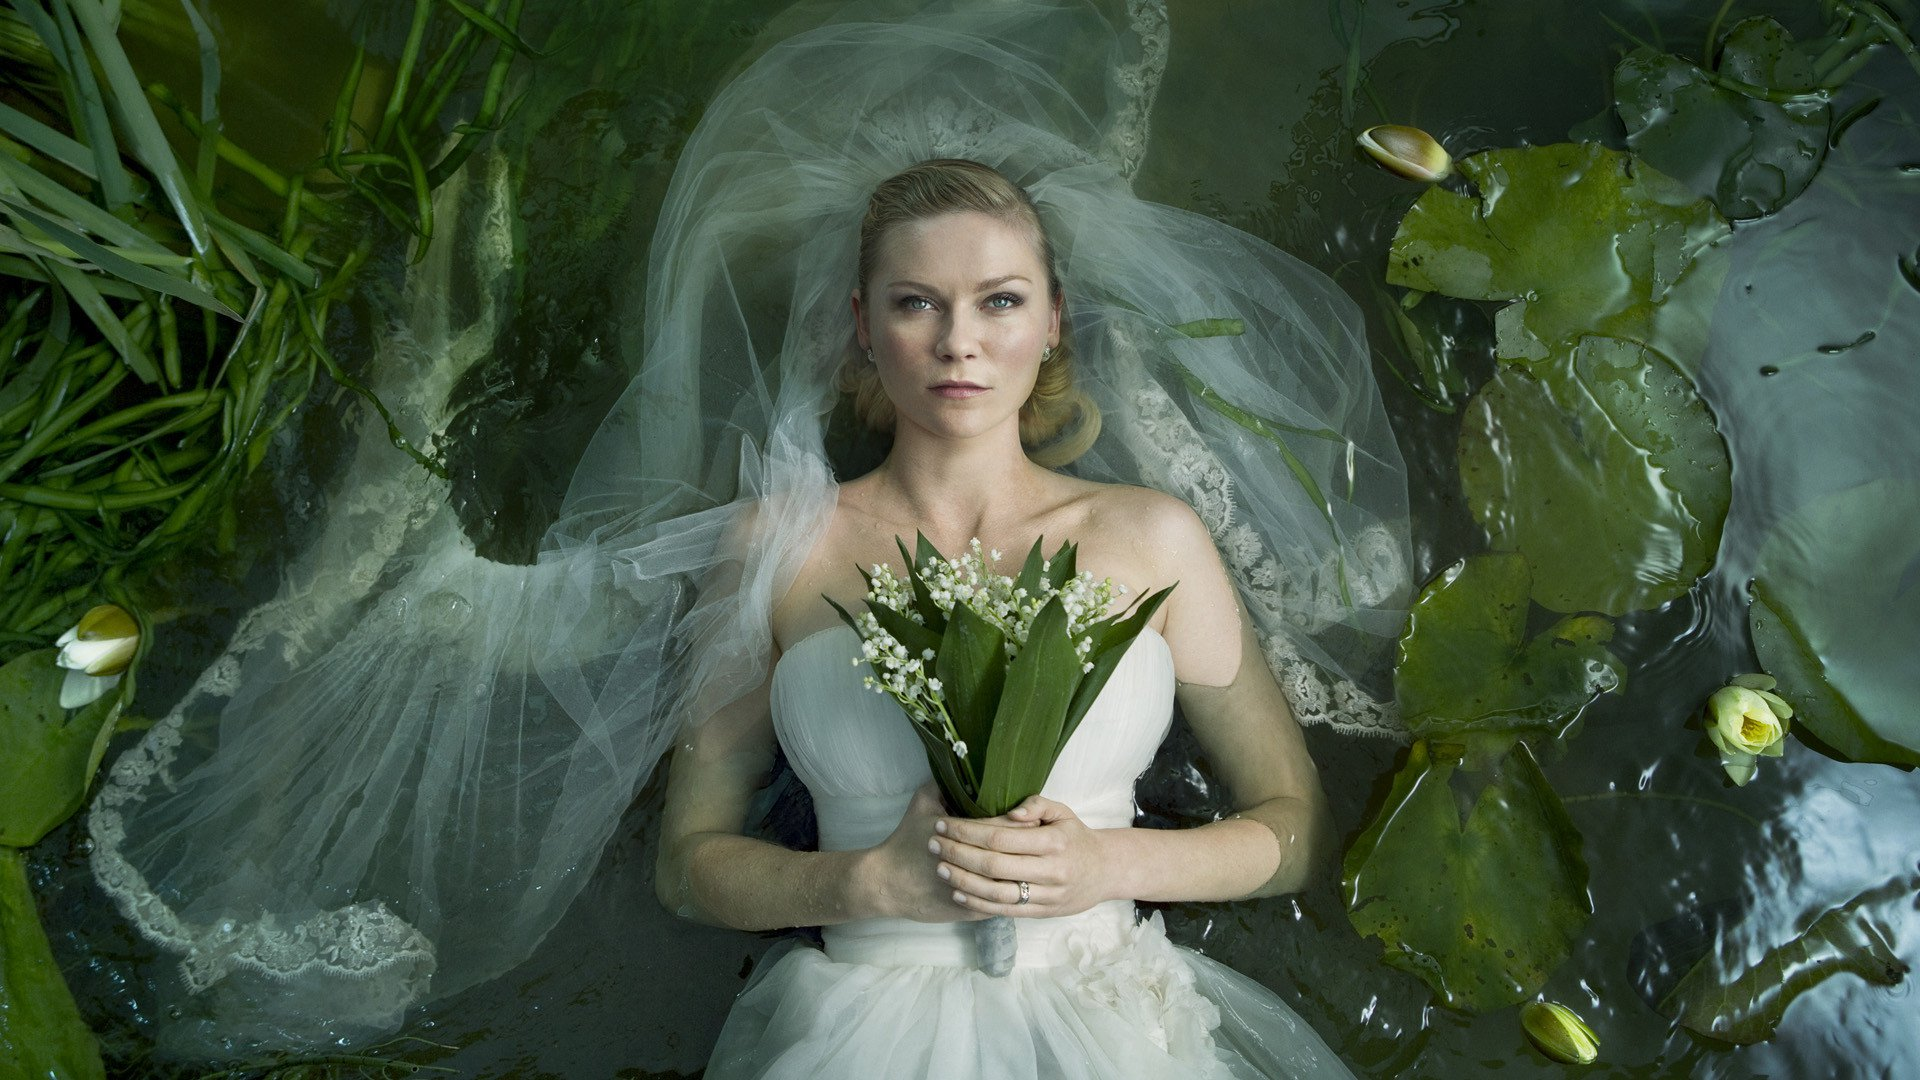 Lars von Trier Is Turning His Films Into Diamonds, Starting With 'Melancholia'